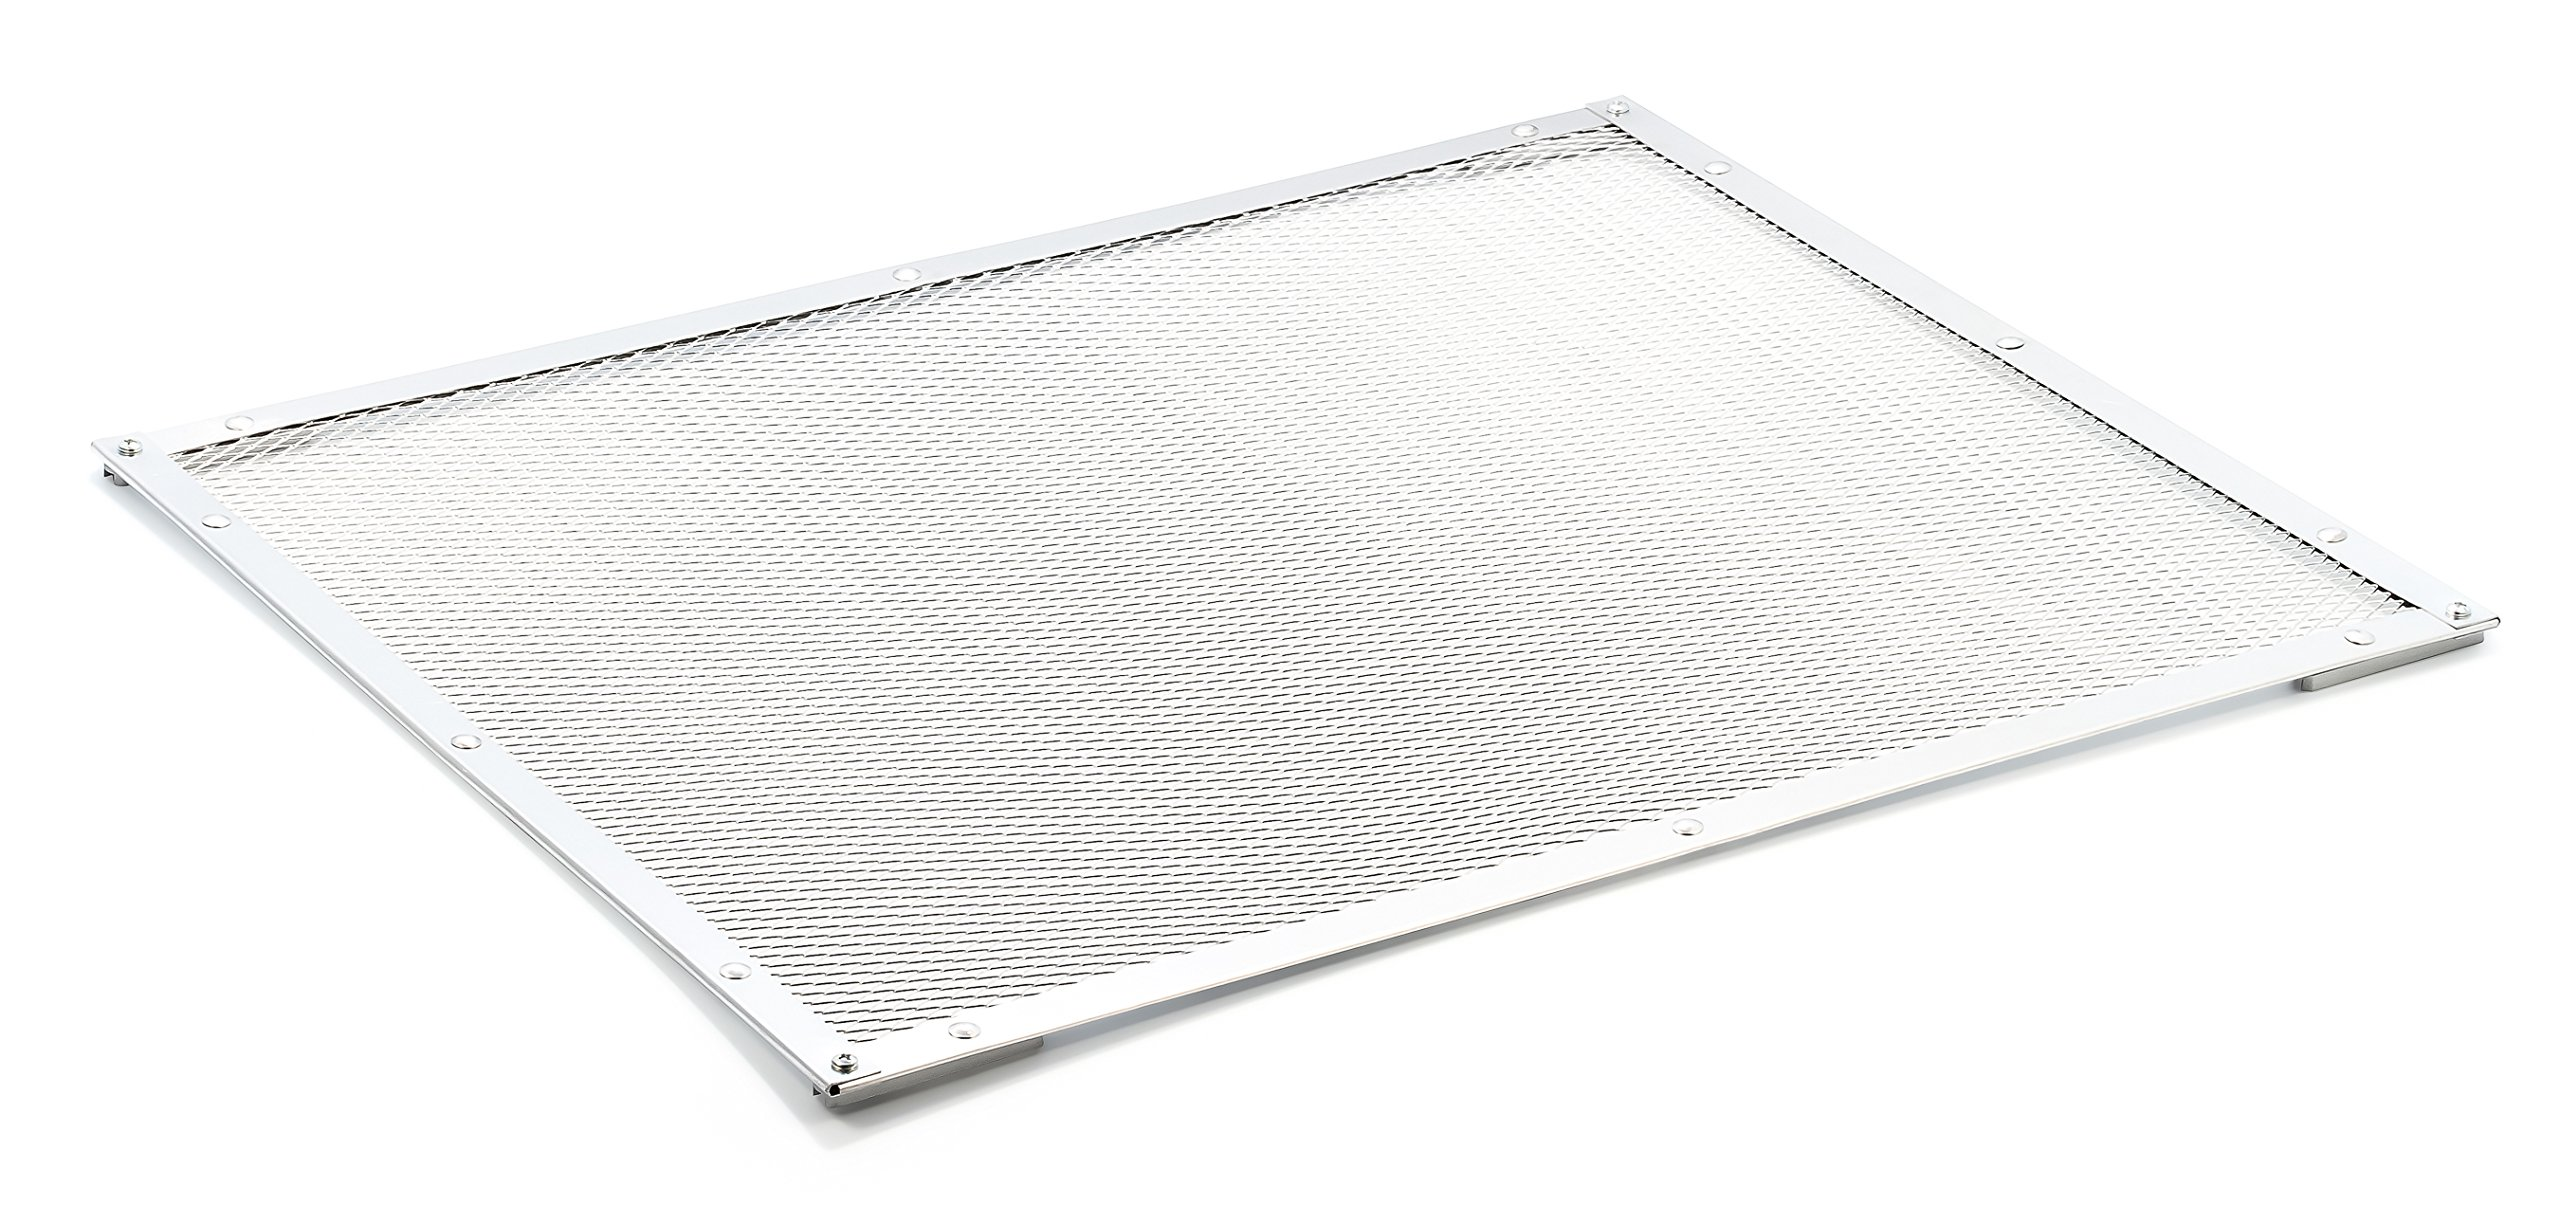 Camco 43981 Aluminum Screen Door Standard Mesh Grille - Protects Your RV's Screen Door, Anodized Aluminum Will Not Corrode by Camco (Image #3)